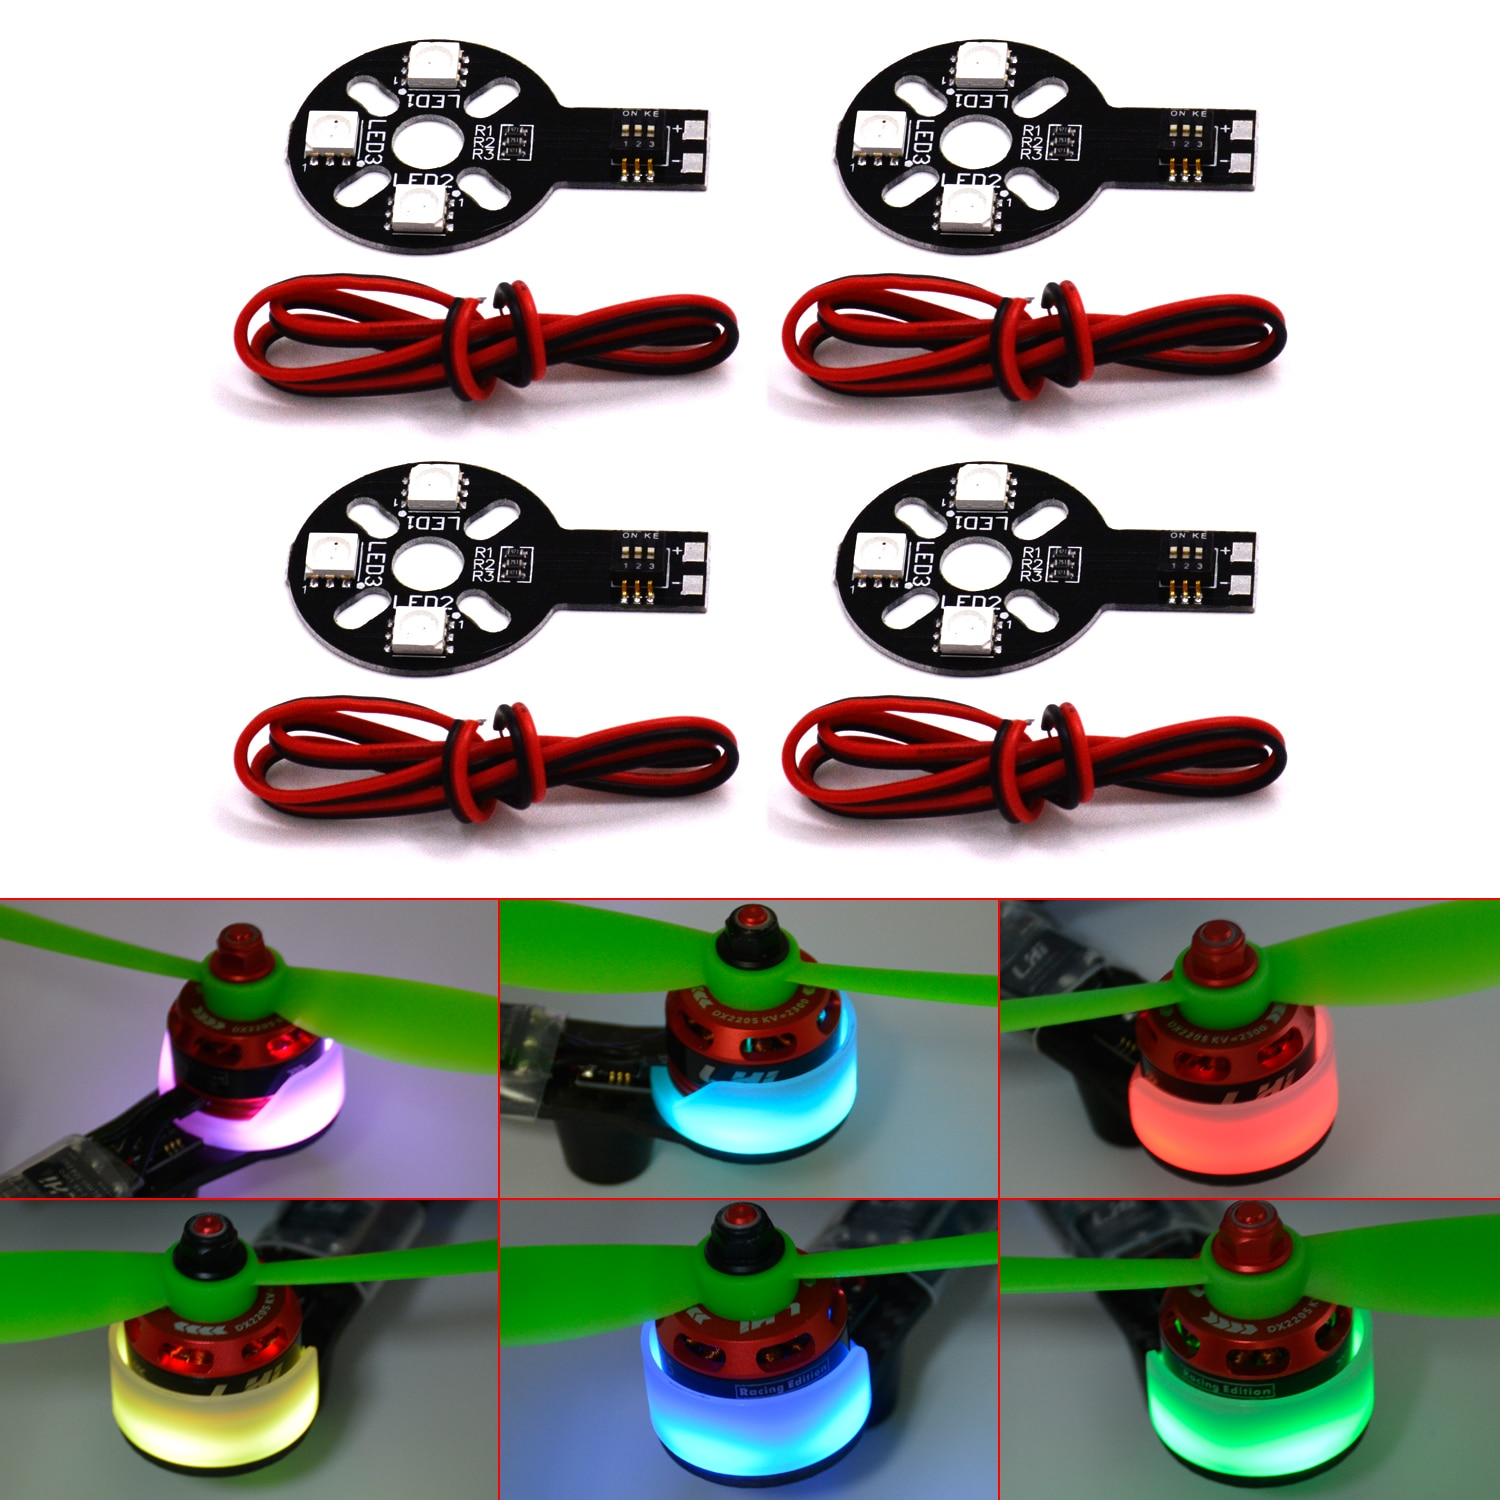 RGB LED Circle Board X6/12V Night lights & Motor cover for QAV250 FPV Multicopter enlarge